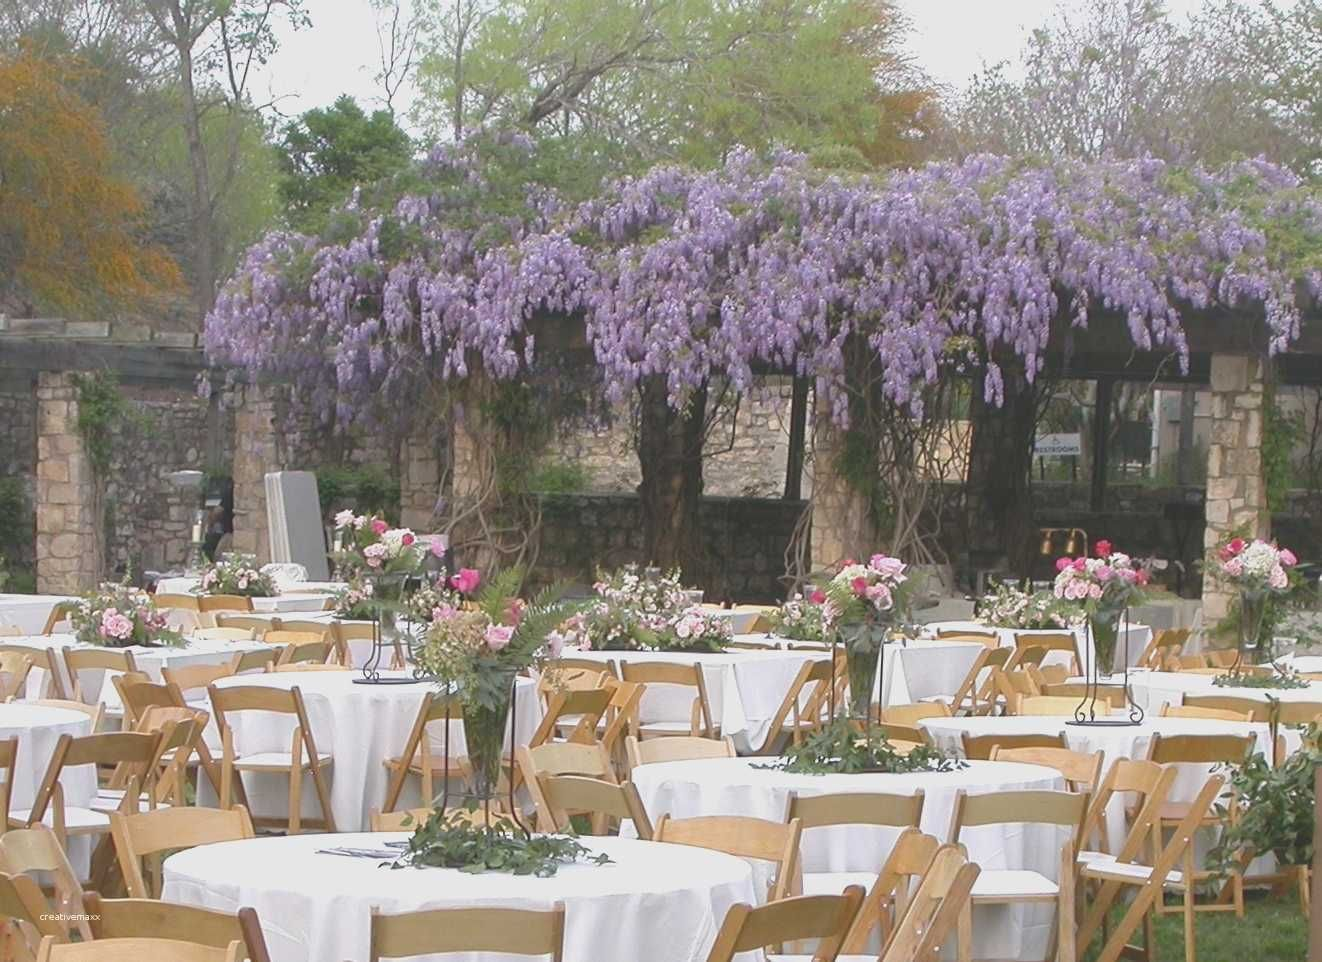 Garden wedding reception decor  Inspirational Indoor Garden Wedding Reception  Garden weddings